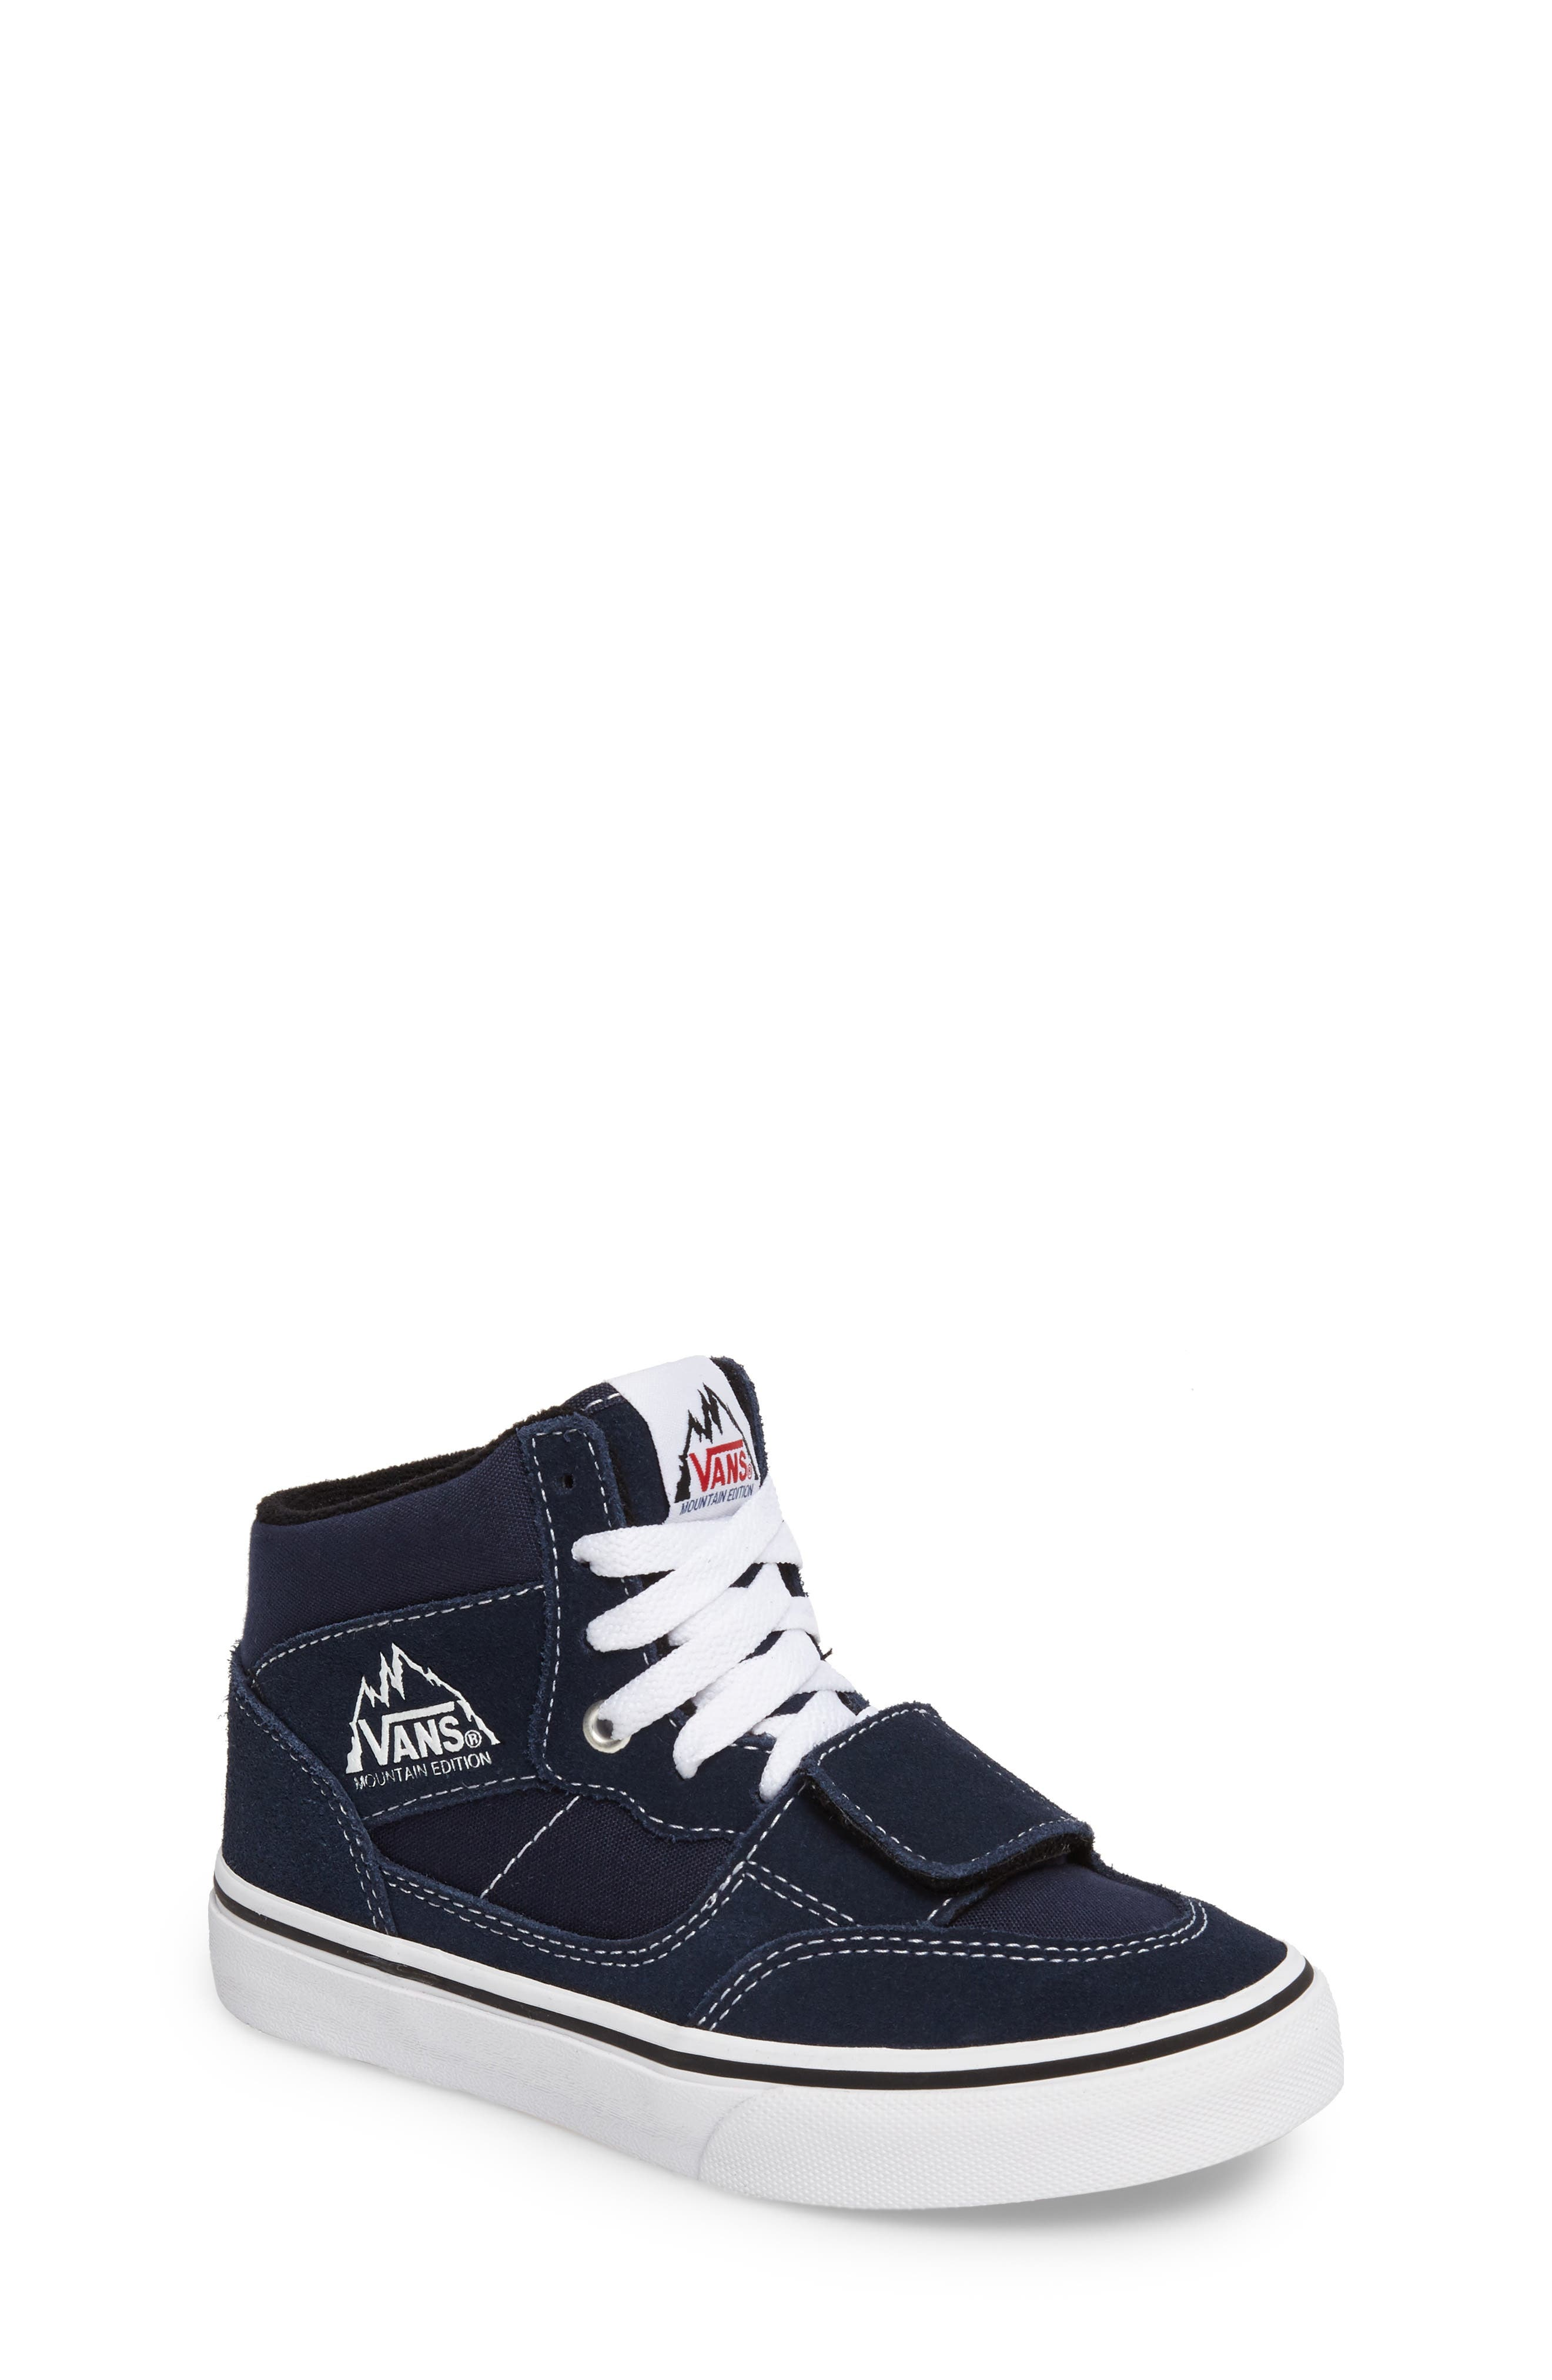 Mountain Edition Mid Top Sneaker,                         Main,                         color, Dress Blue Canvas/ Suede